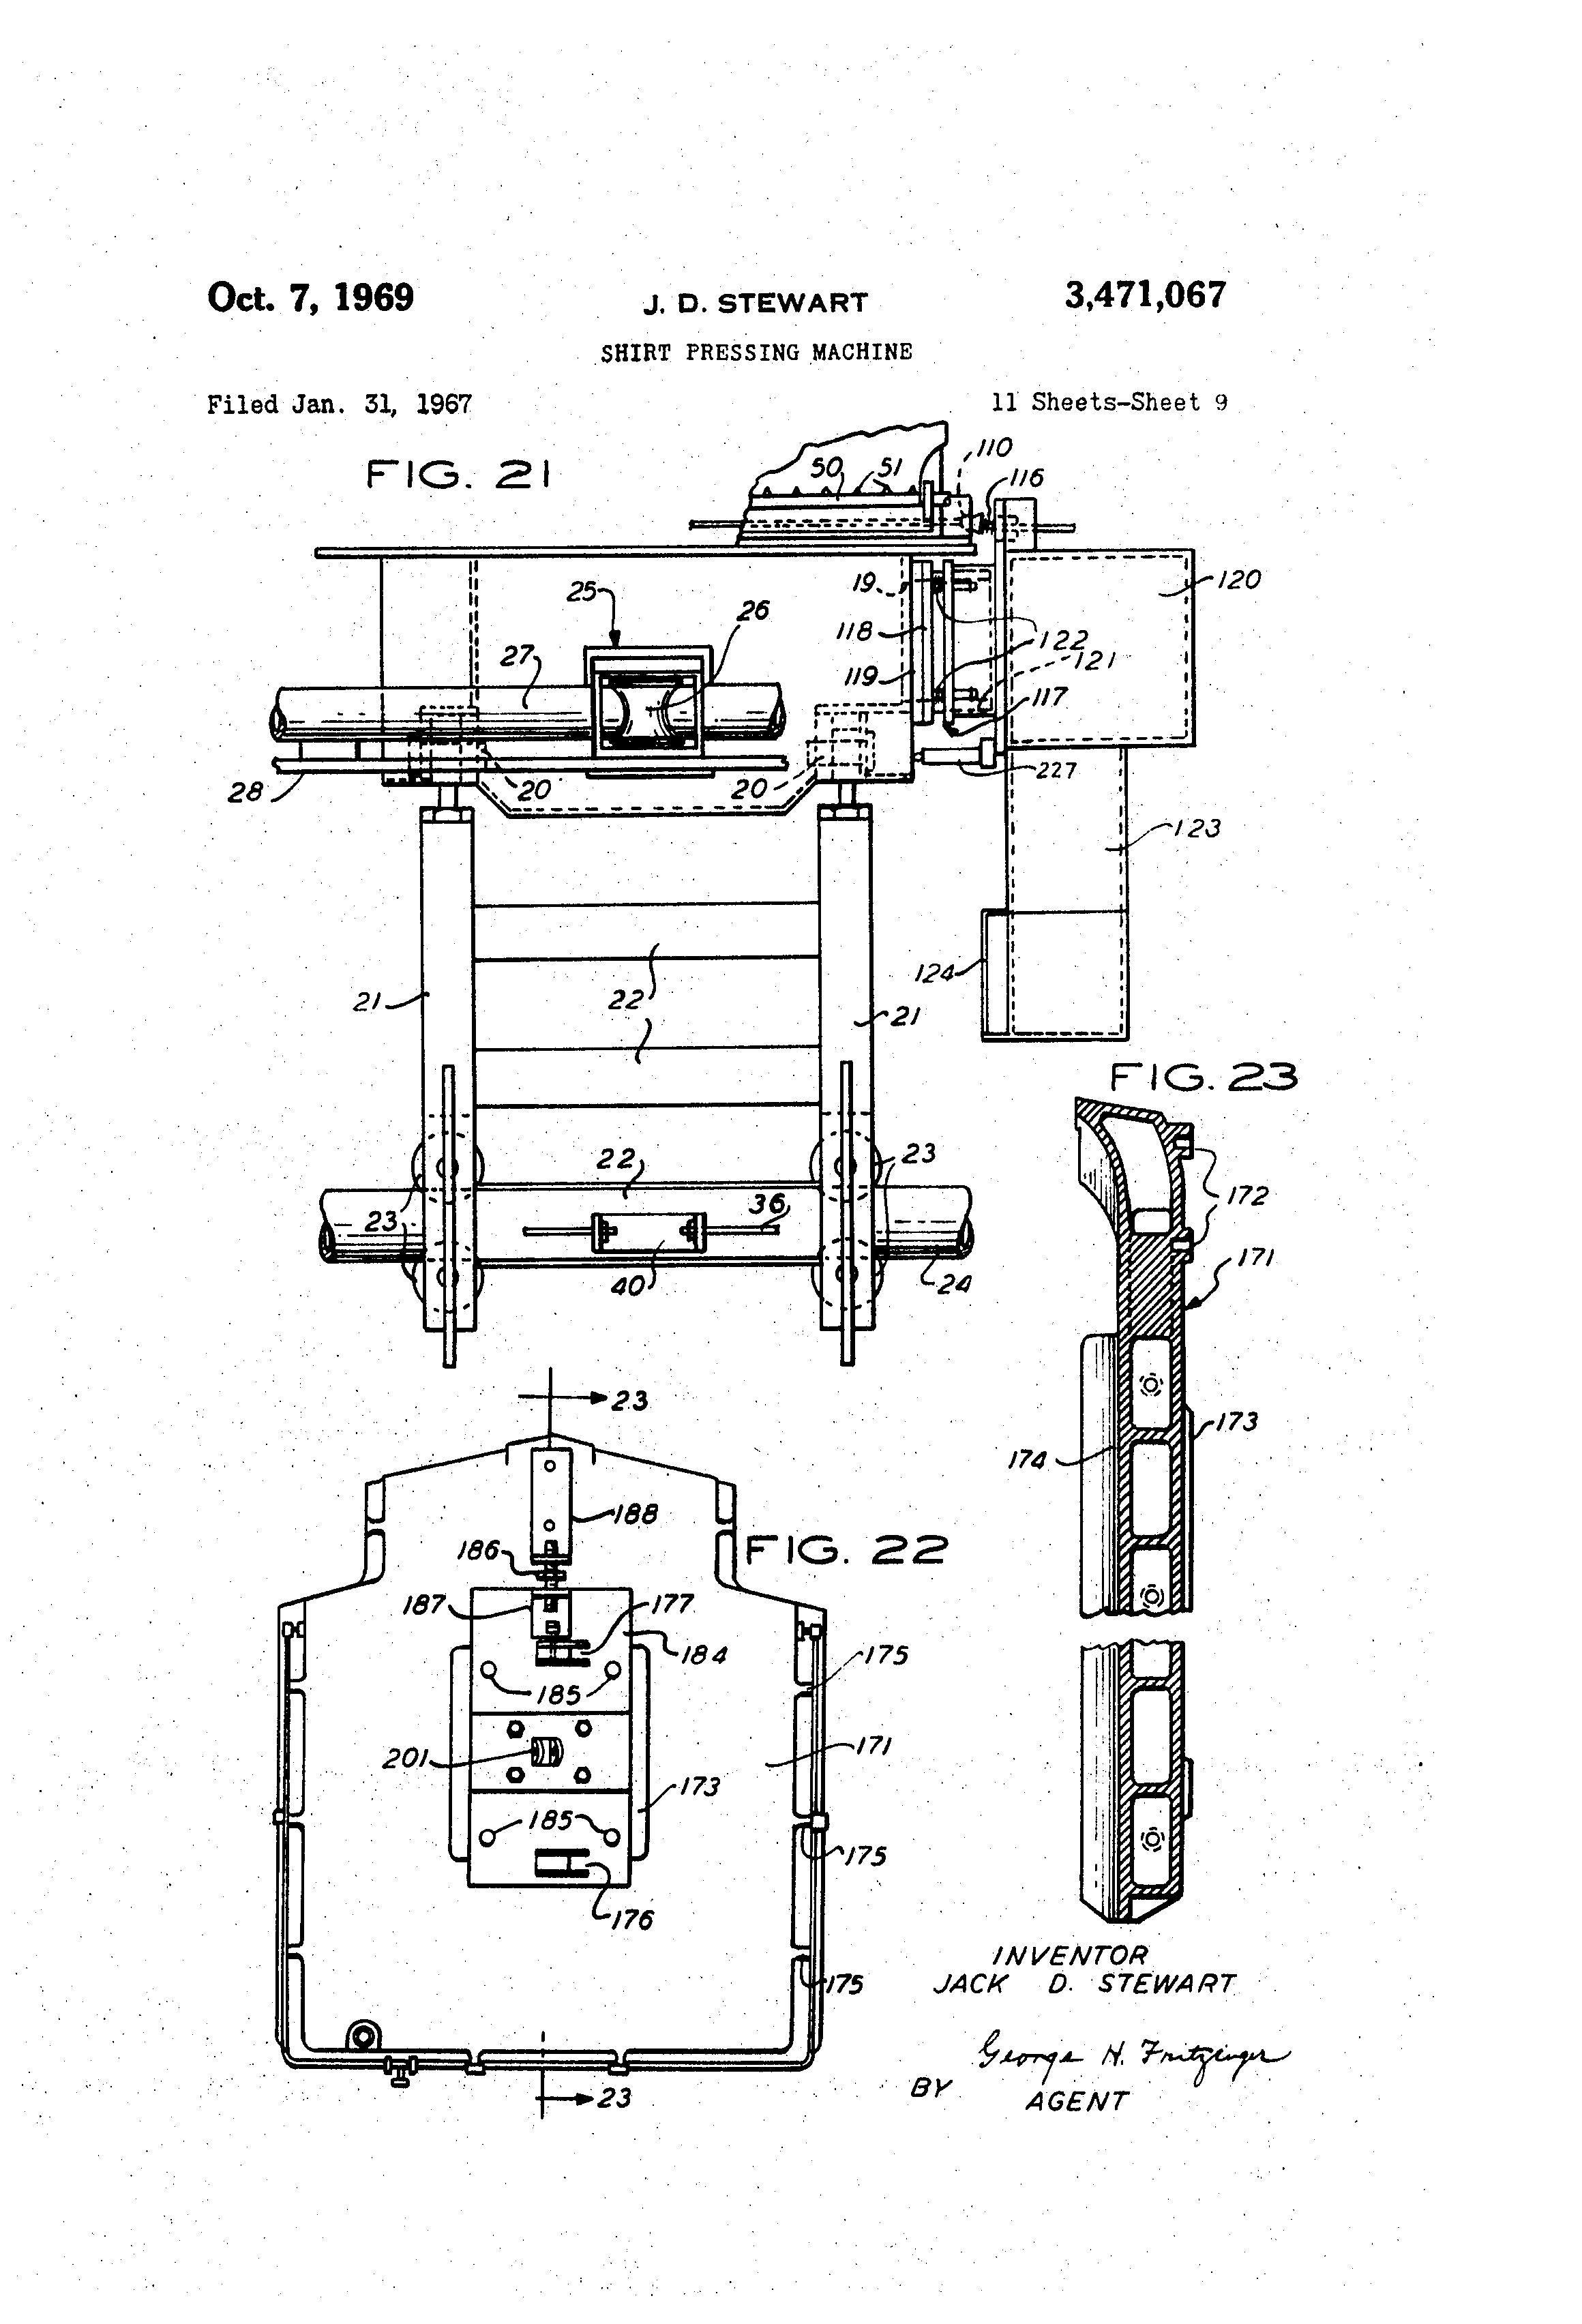 US3471067 8 patent us3471067 shirt pressing machine google patents  at nearapp.co